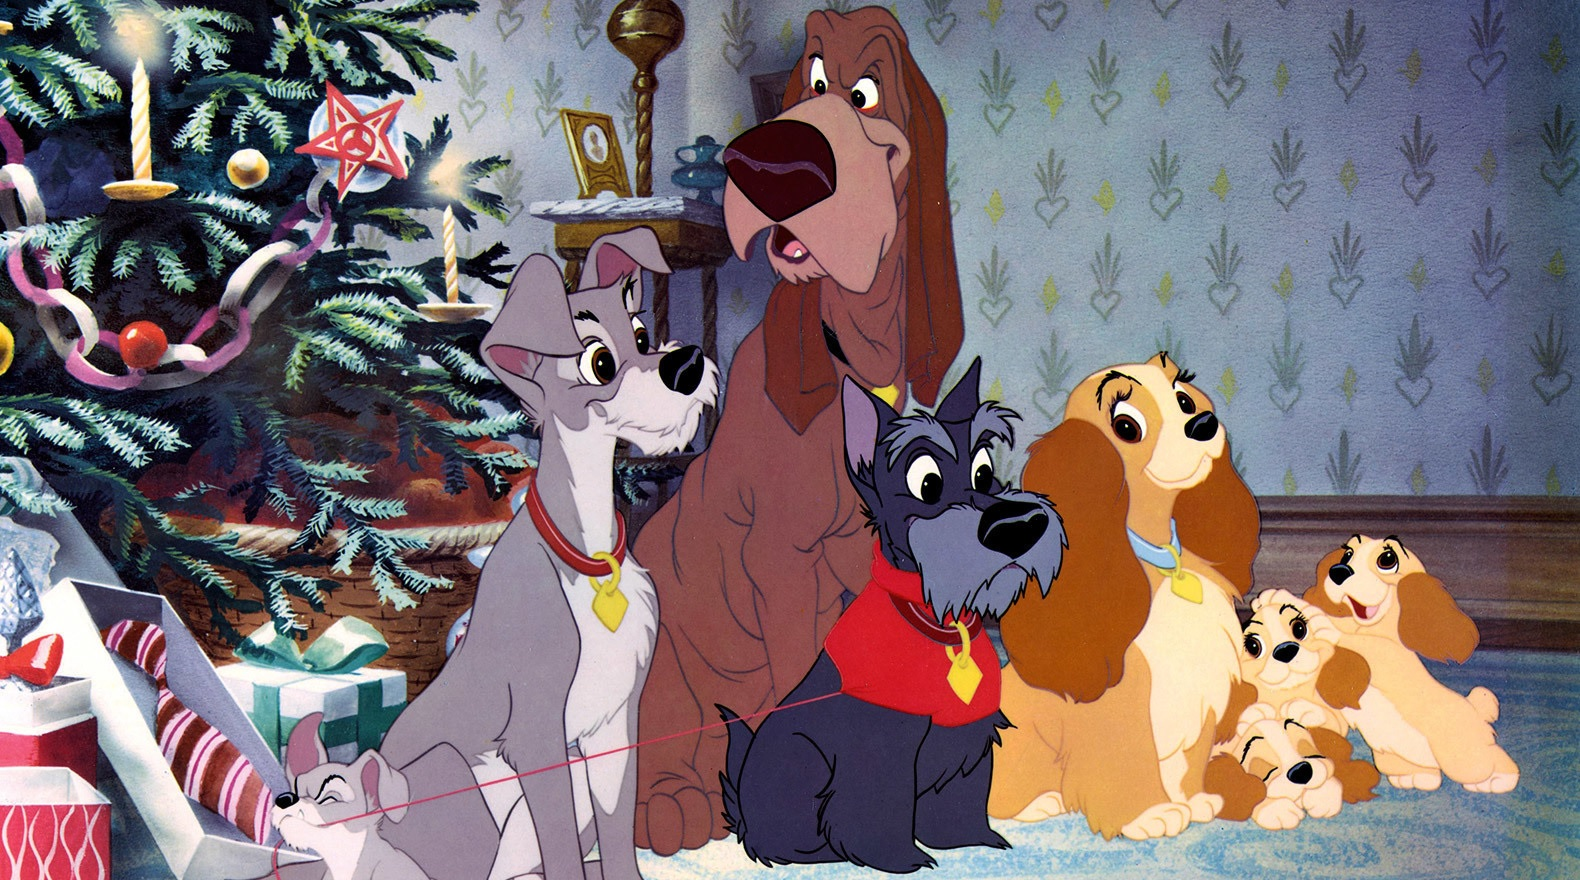 25. Lady and the Tramp